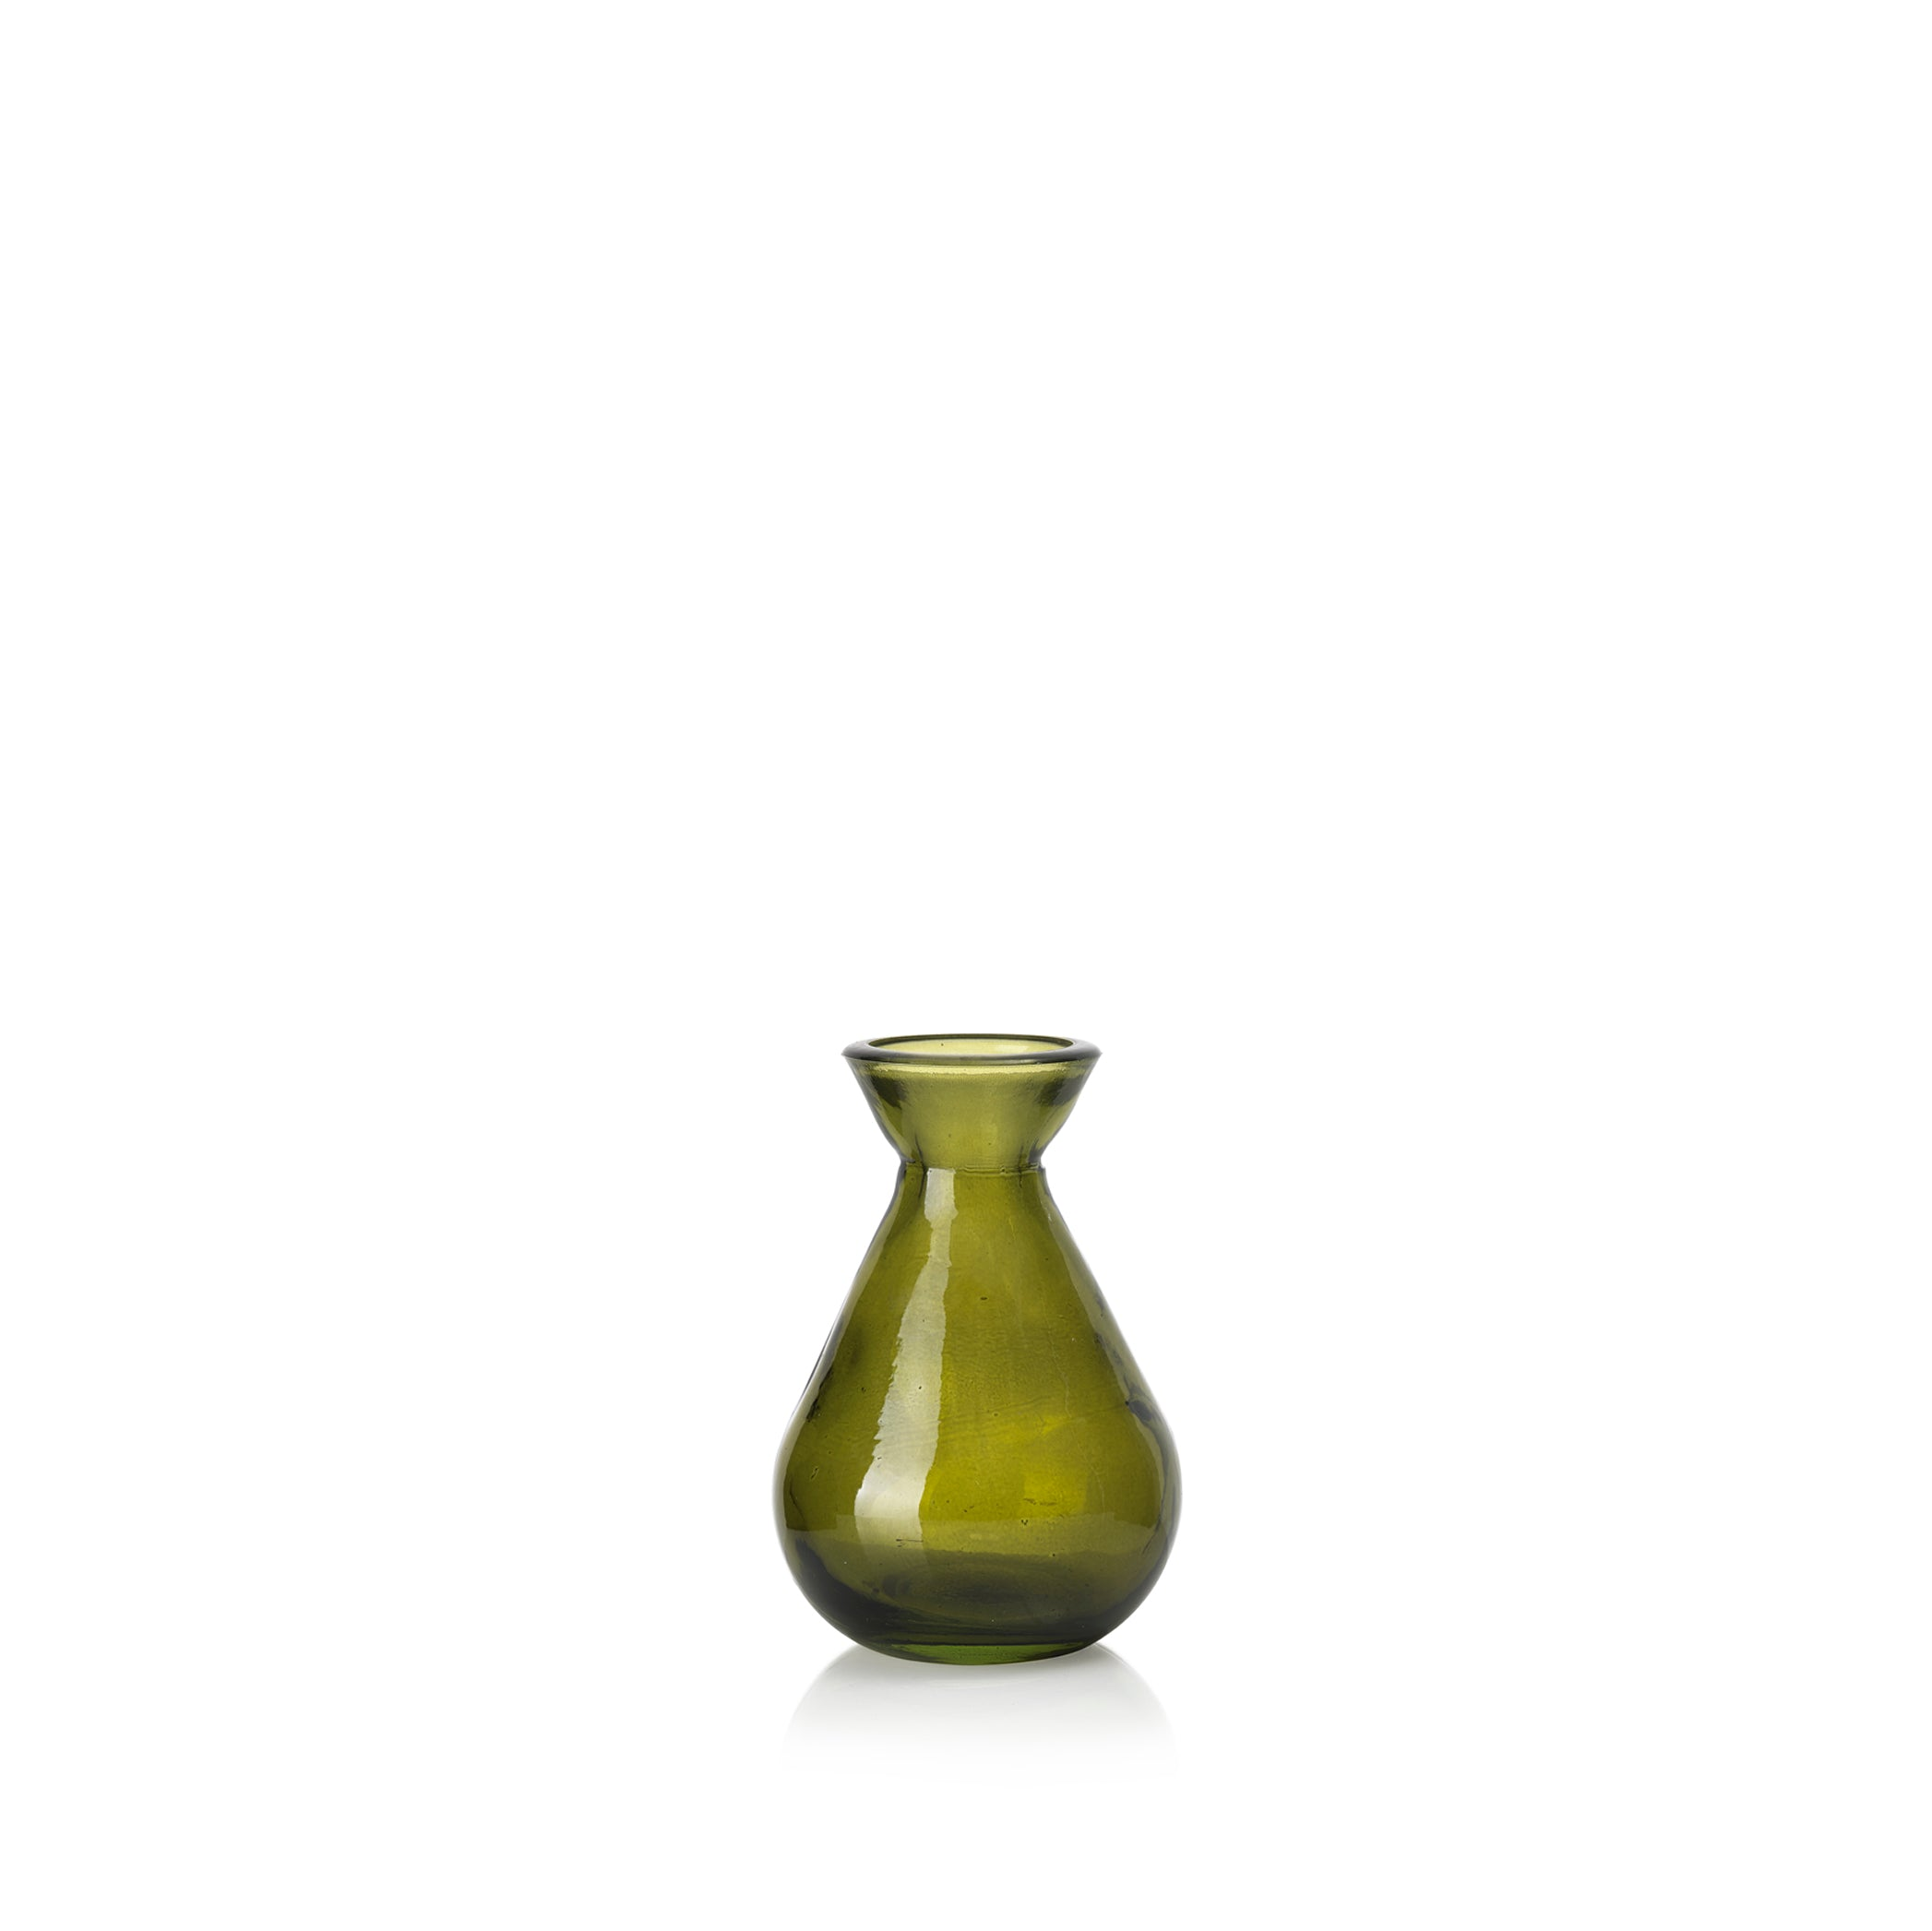 Recycled Glass Bud Vase in Avocado Green